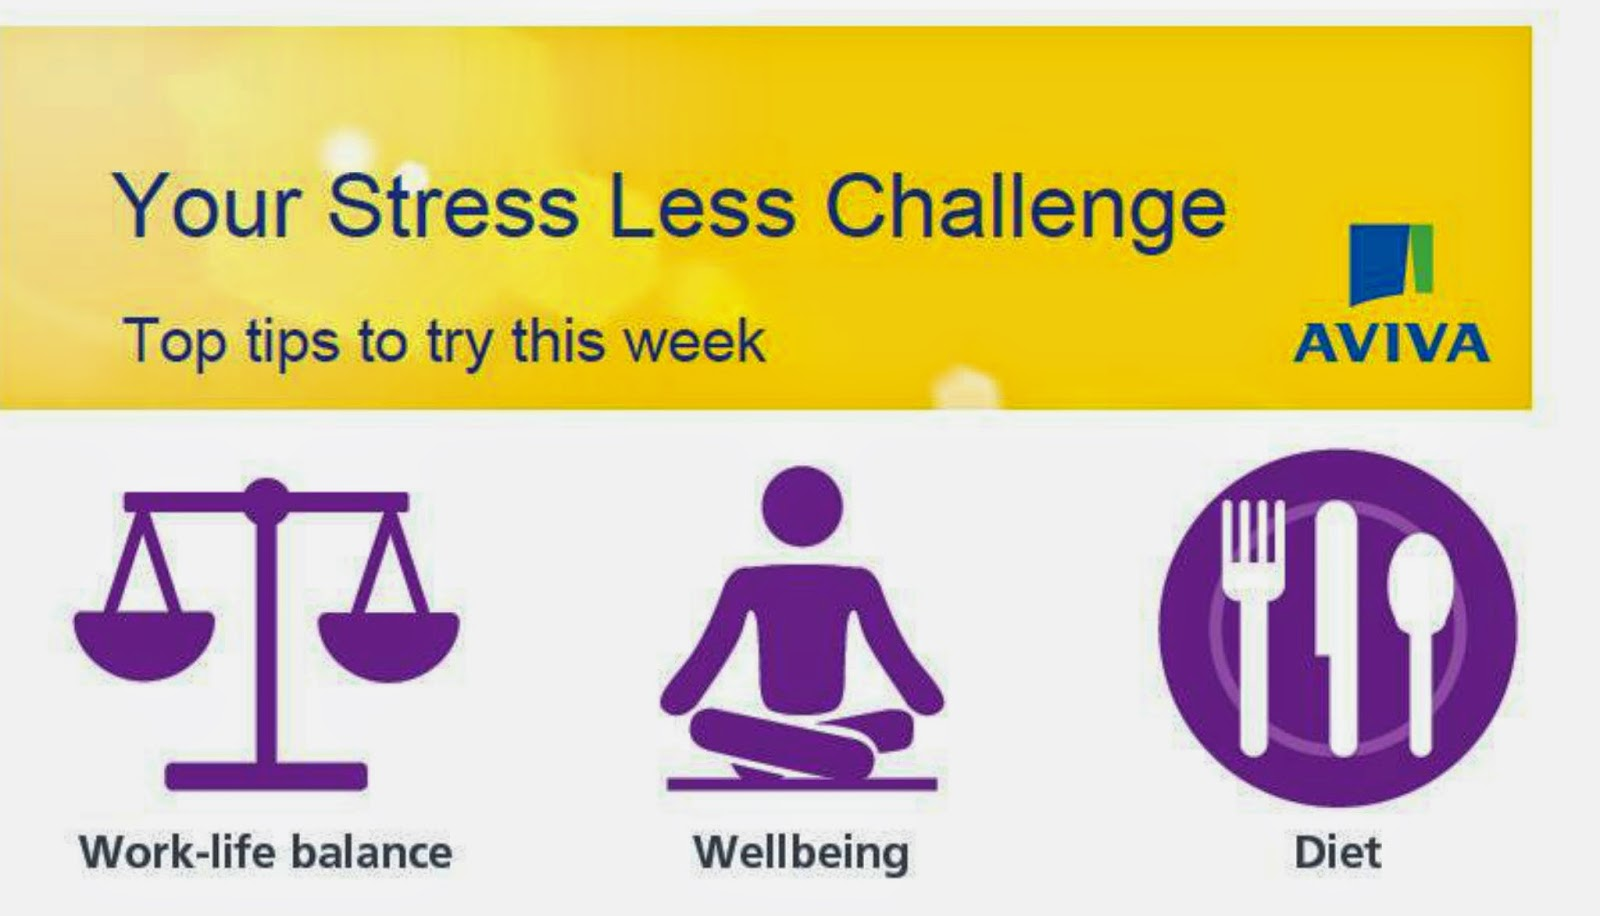 a summary of stress Stress can be brief and highly situational (heavy traffic) or persistent and complex (relationship problems, an ailing family member a spouse's death).